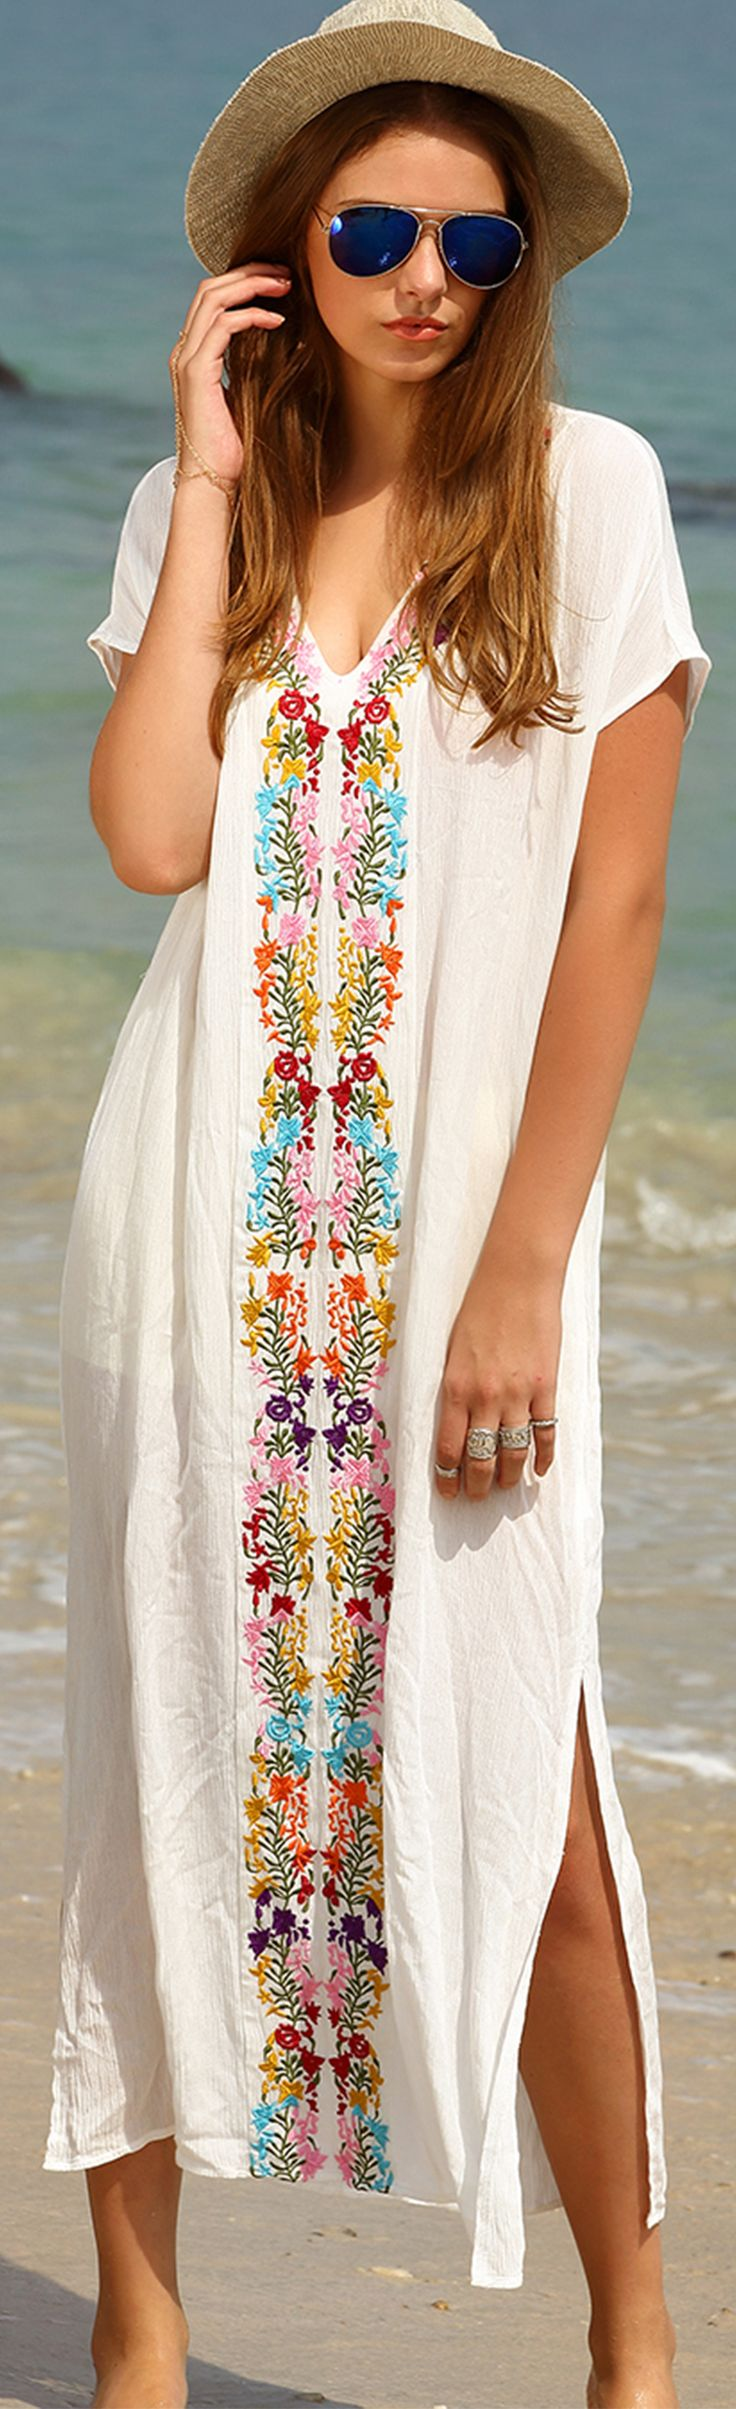 Beach dresses for the beach time